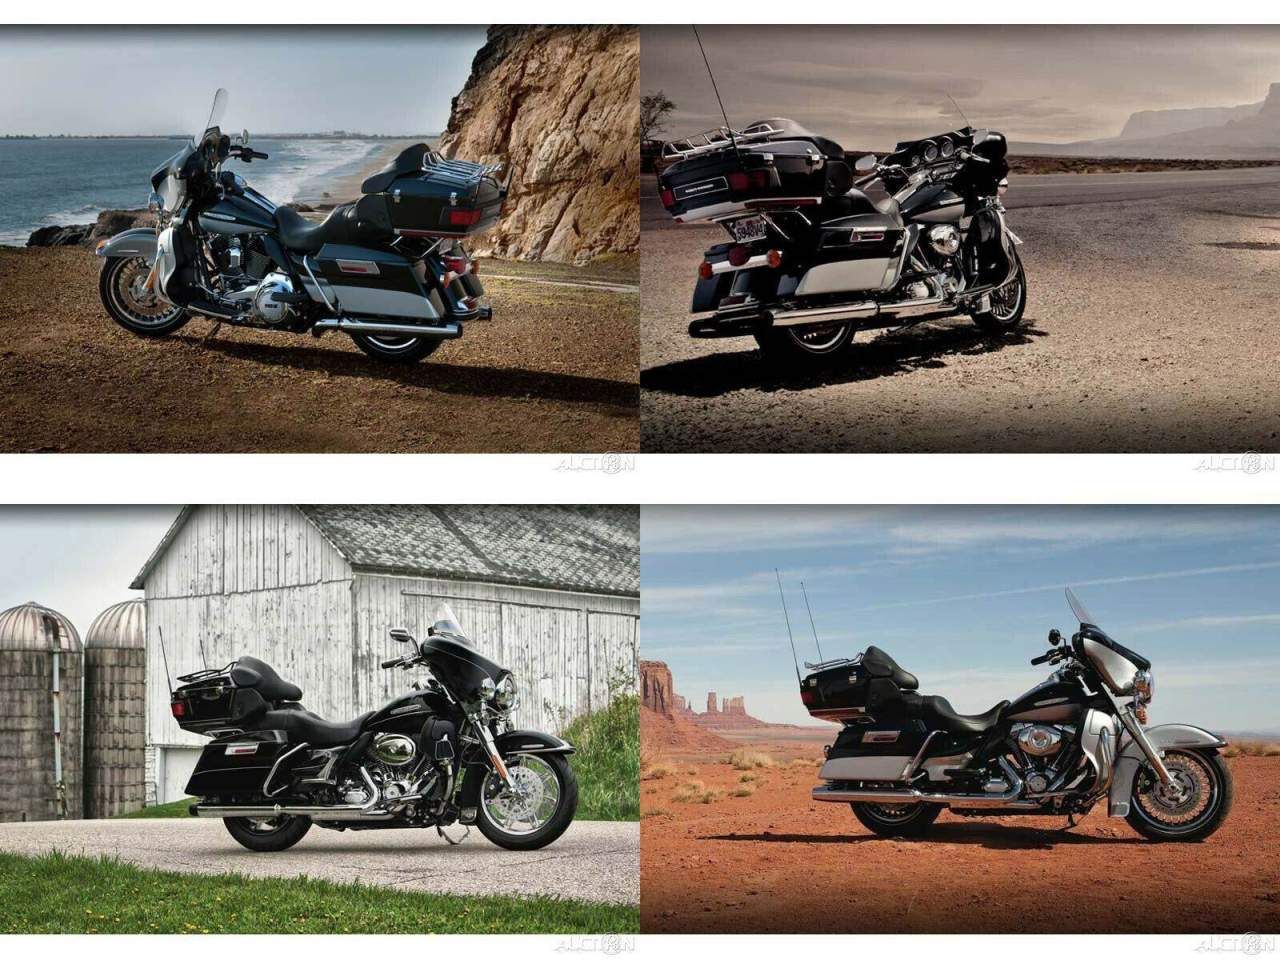 2012 Harley-Davidson Touring Electra Glide Ultra Limited Ember Red Sunglo / Merlot Sunglo used for sale craigslist